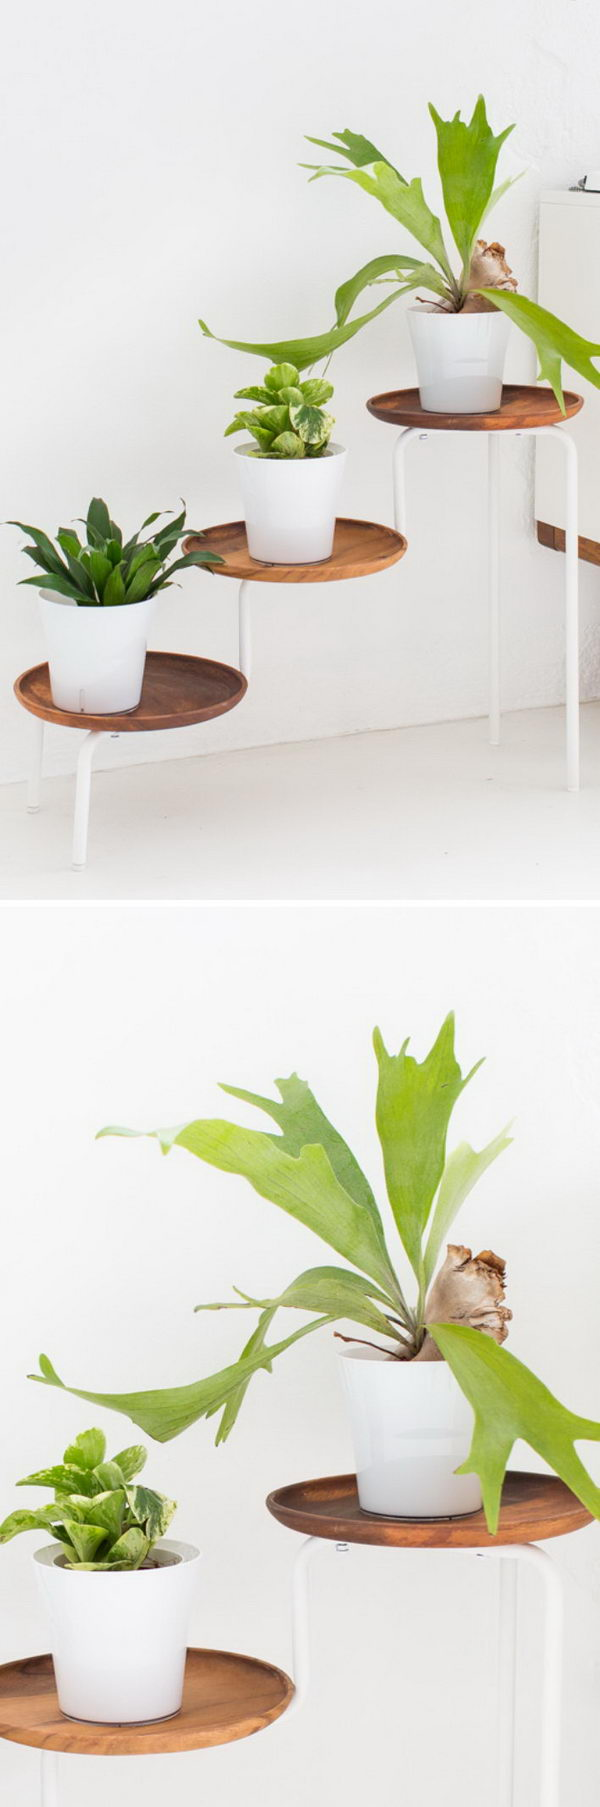 25+ DIY Plant Stands With Thrift Store Finds - Hative on Plant Stand Ideas  id=13459